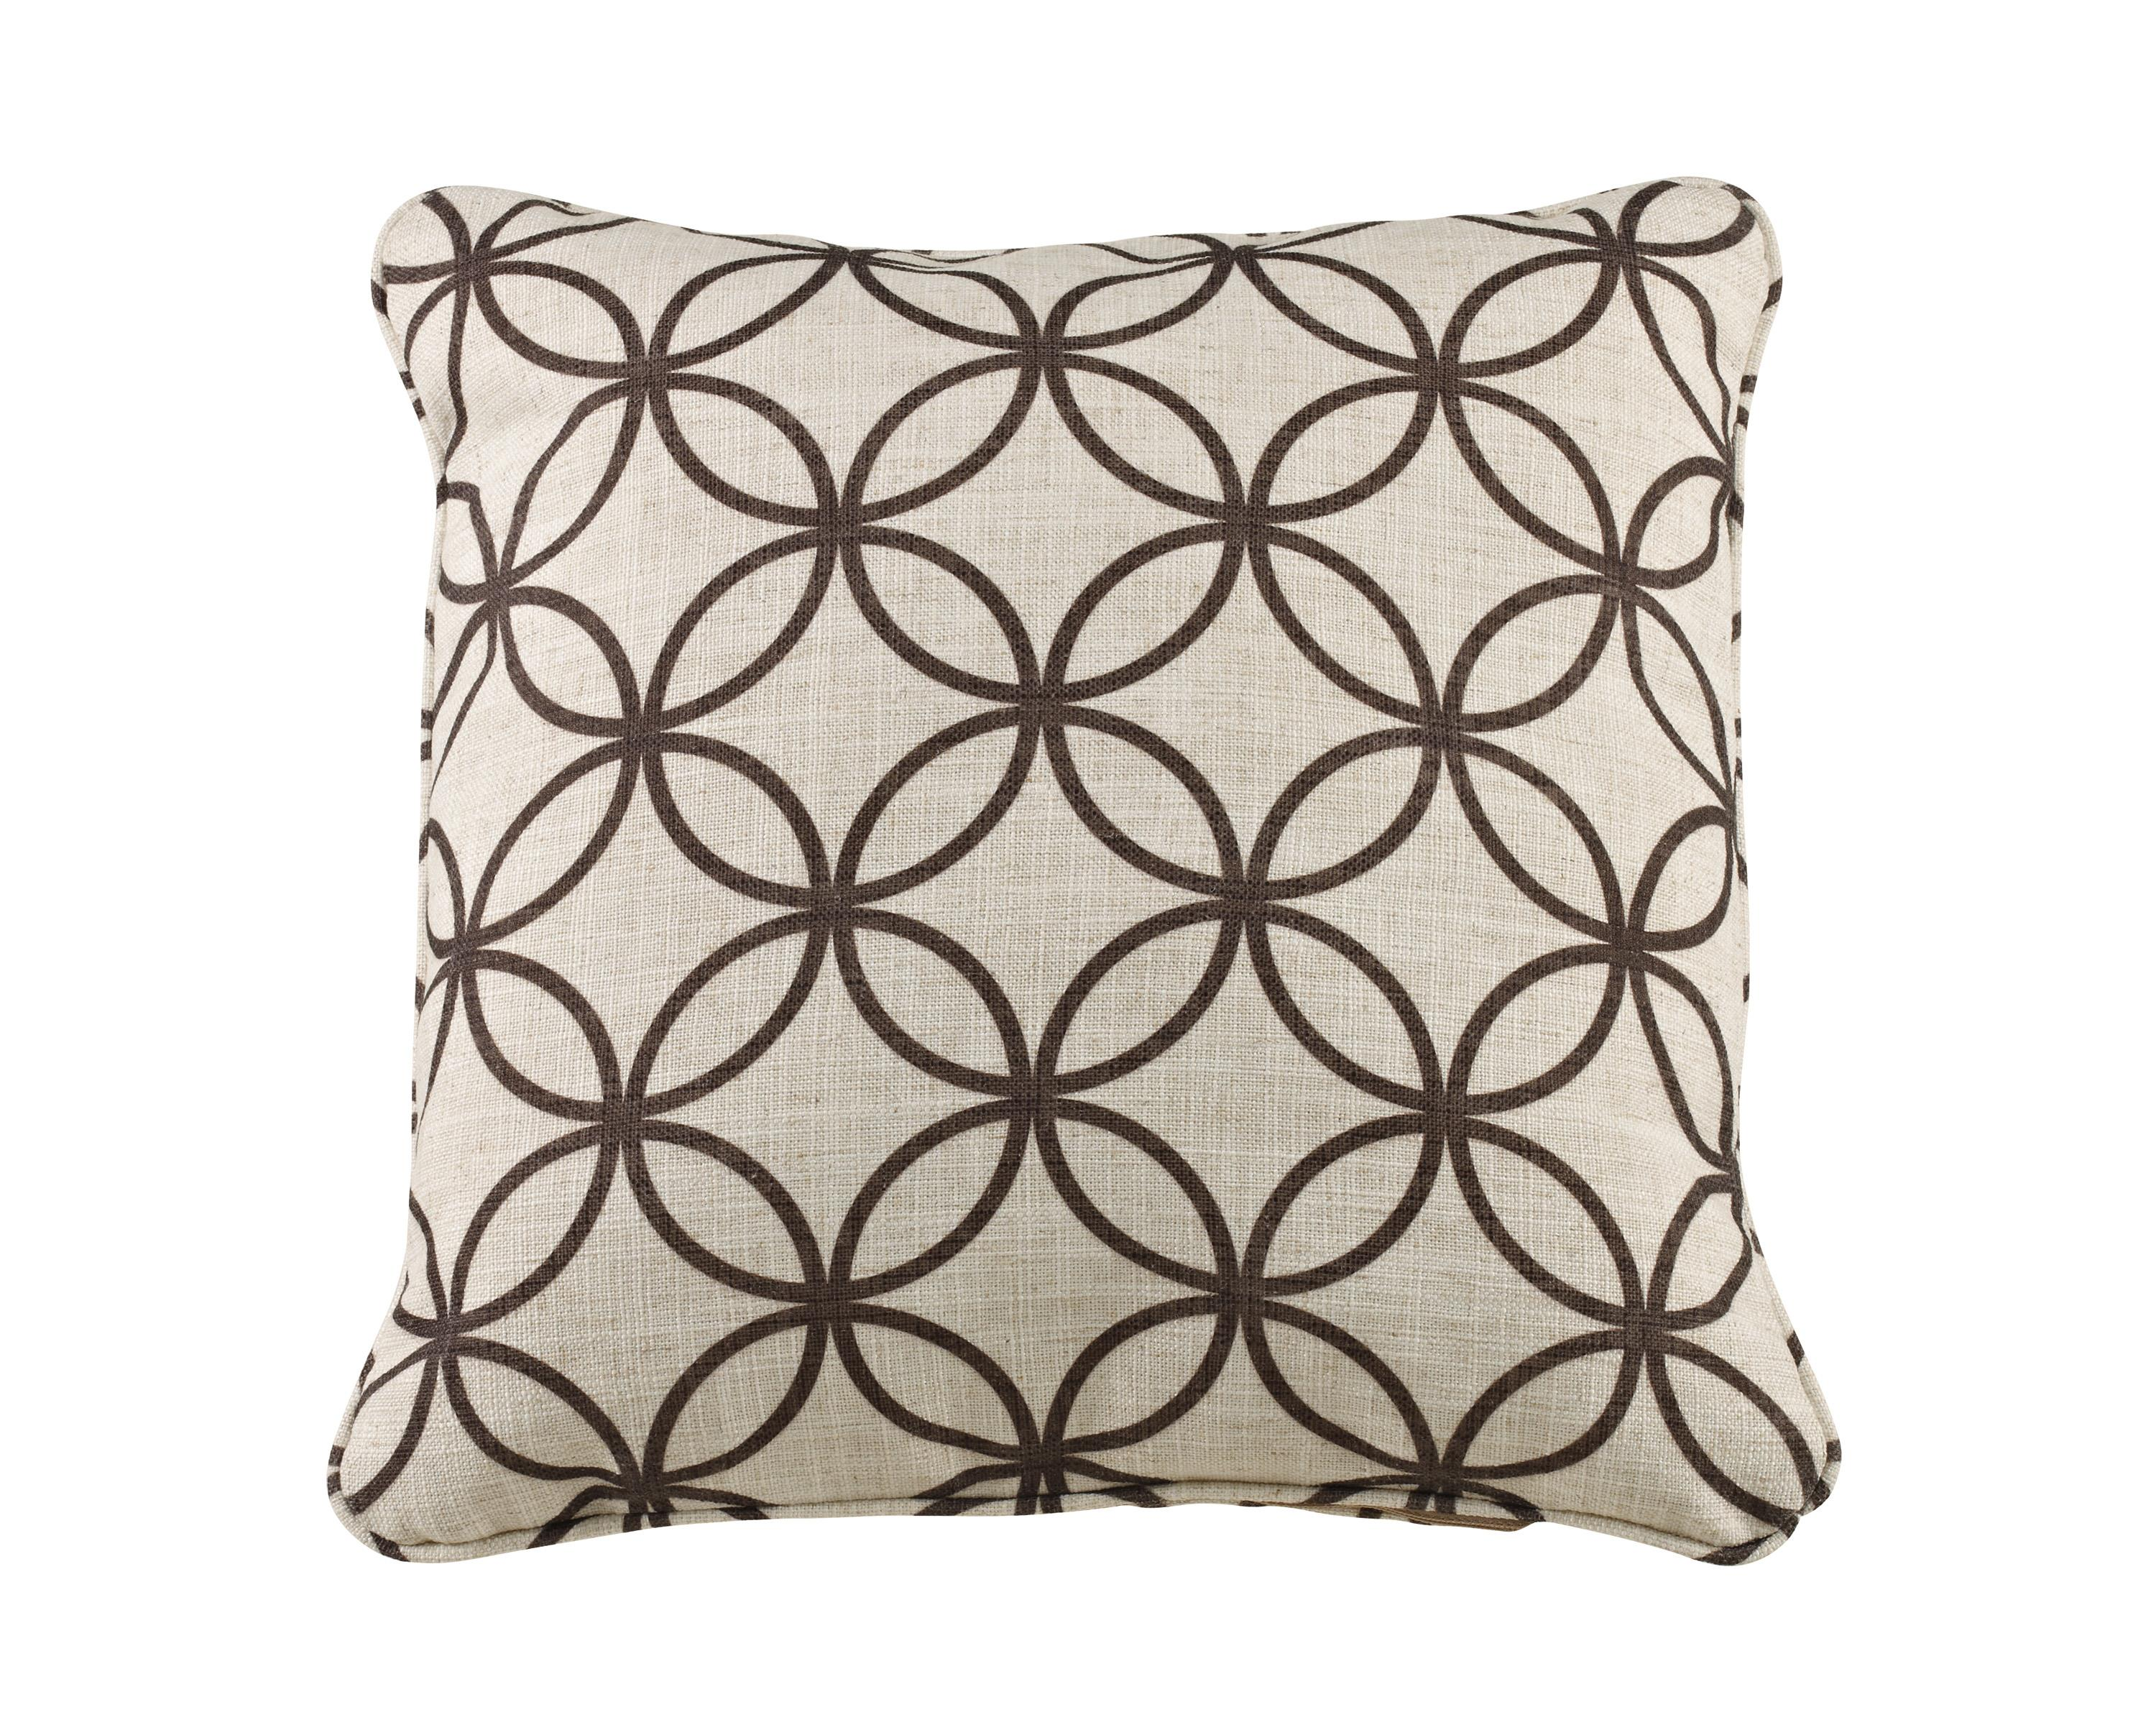 Signature Design by Ashley Pillows Rippavilla - Bark Pillow - Item Number: A1000201P